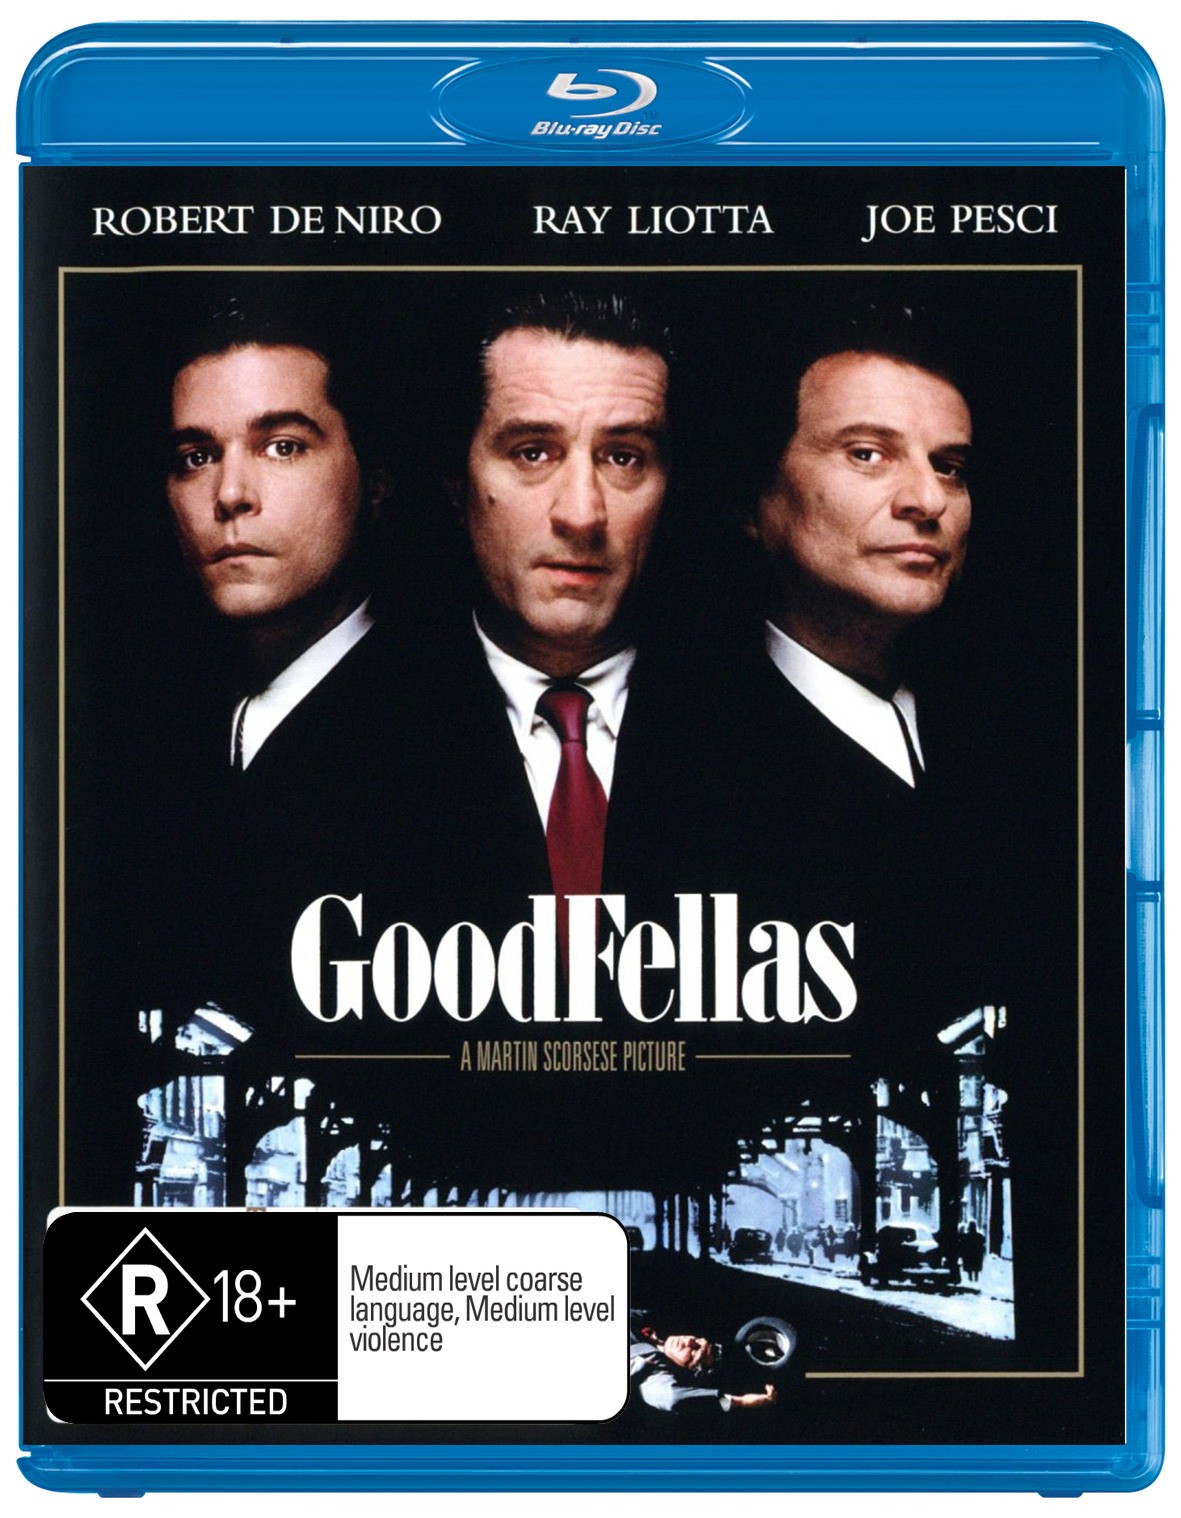 GoodFellas on Blu-ray image